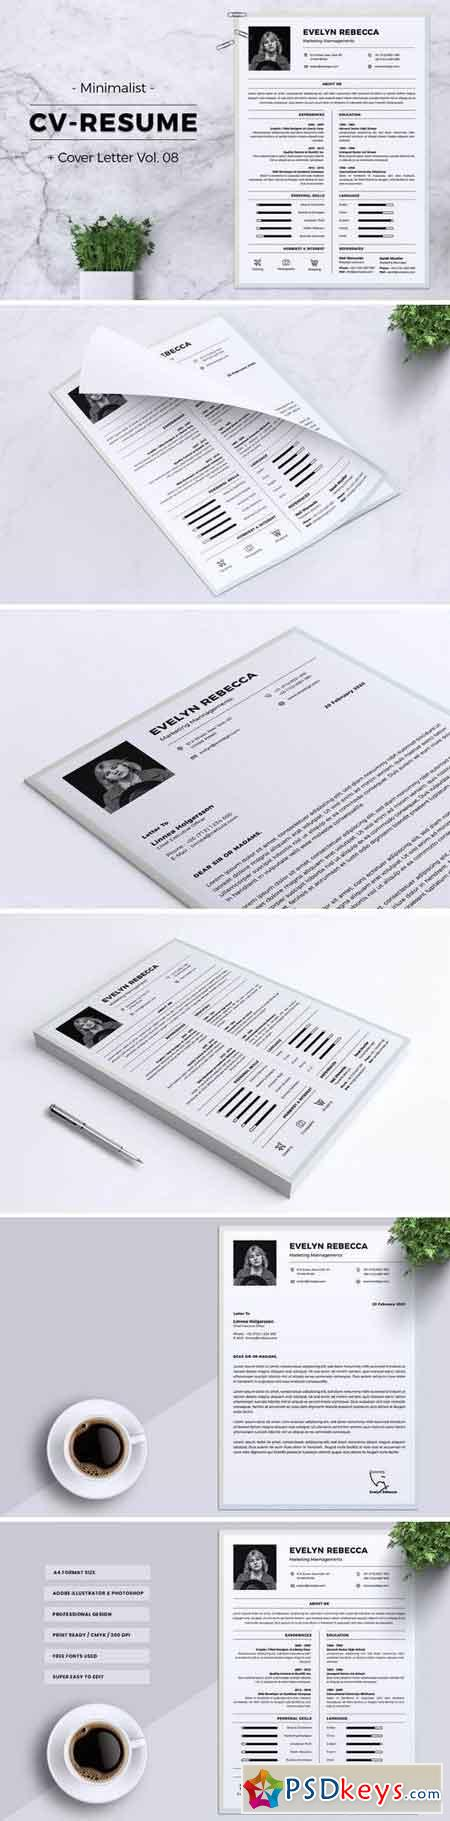 Minimalist CV Resume Vol. 08